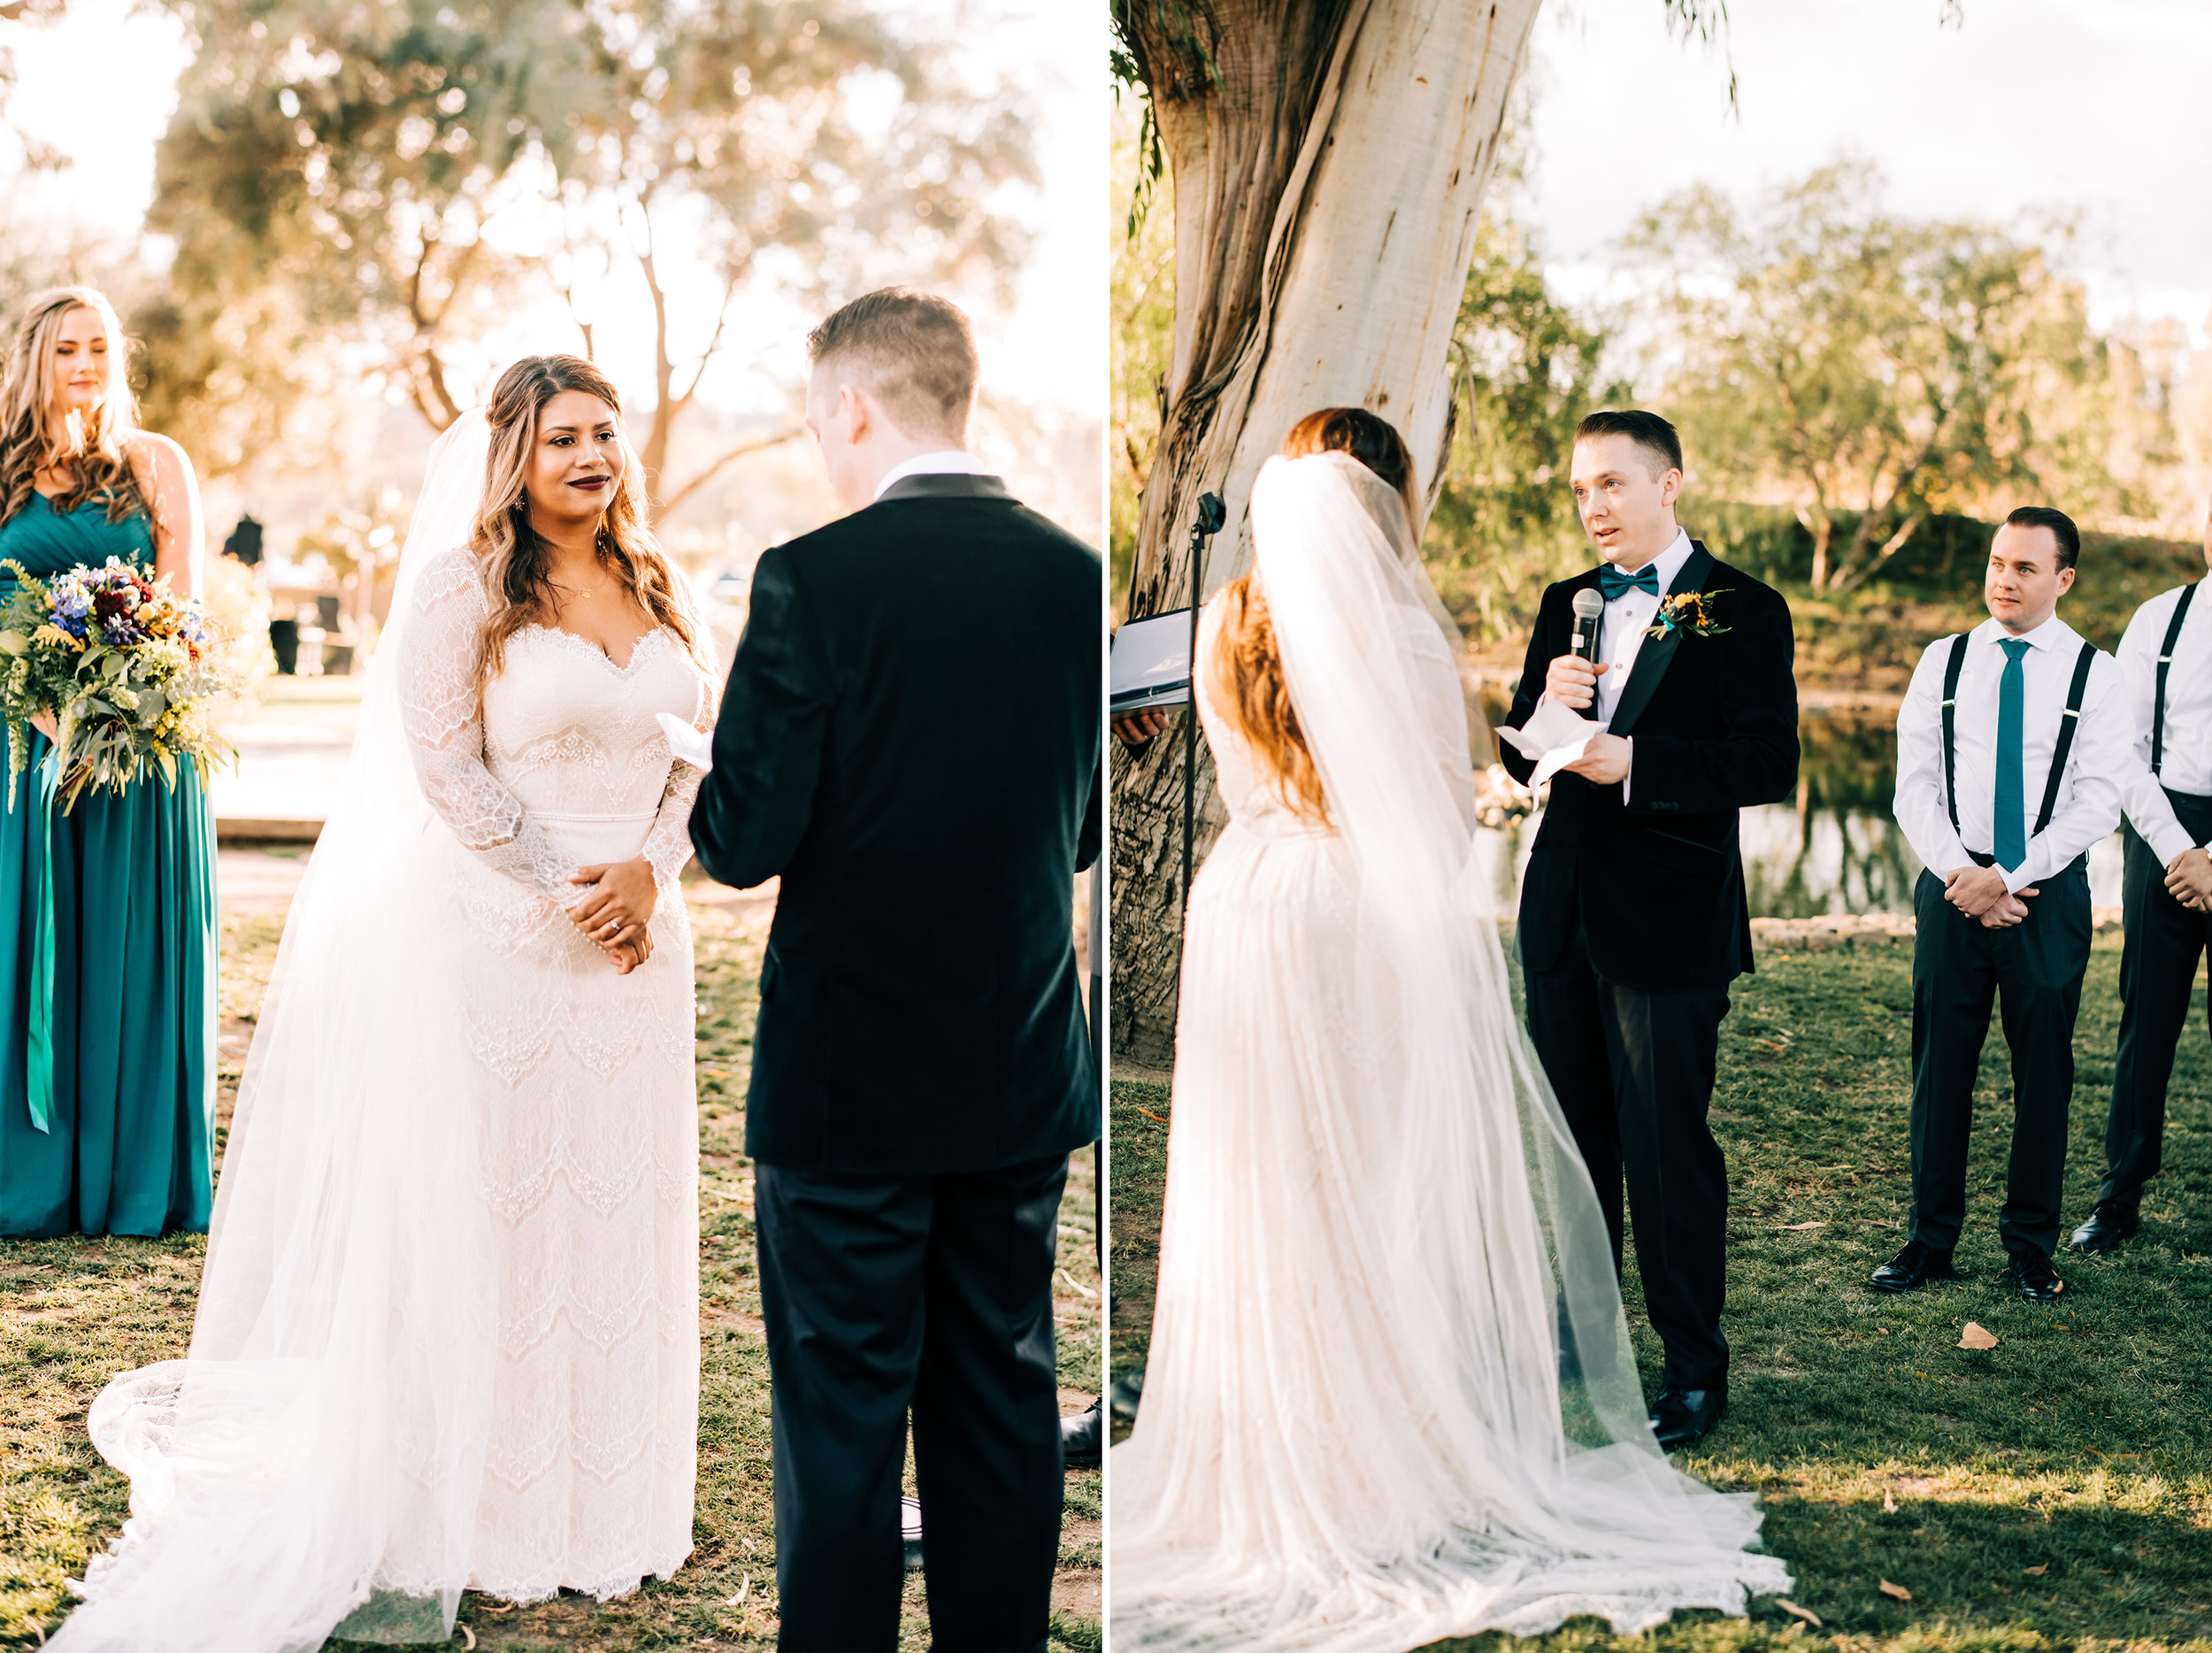 bay area nontraditional wedding photographer southern california boho wedding love light magic san francisco oakland northern california-542.jpg